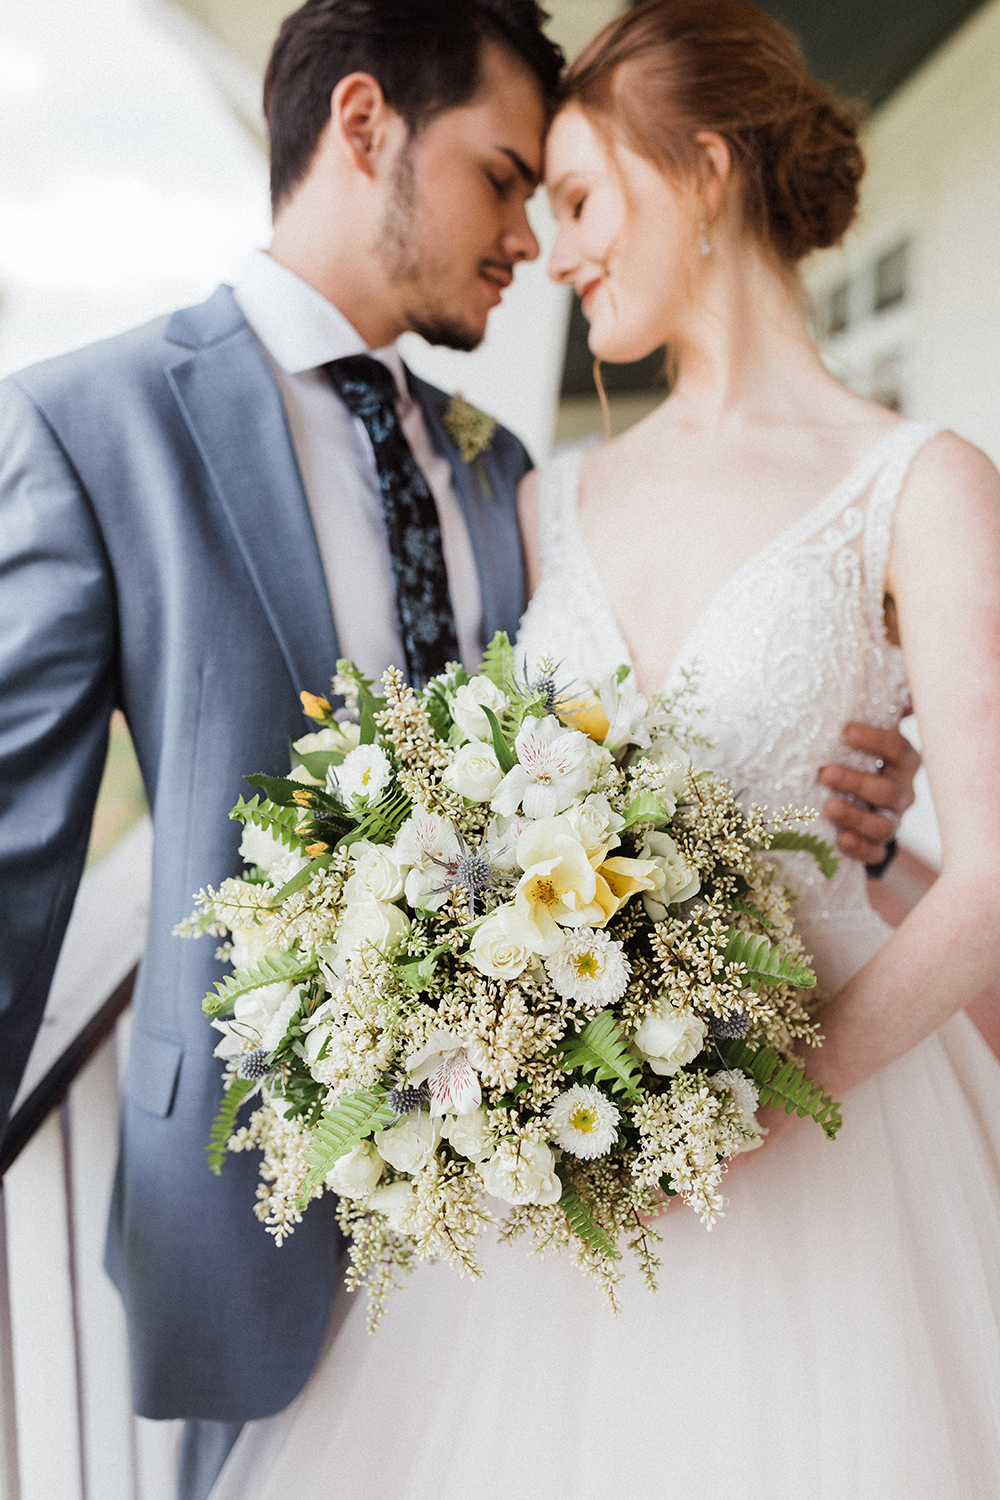 White & Yellow Wedding Bouquet with Fern Greenery | photo by Ash Simmons Photography | featured on I Do Y'all